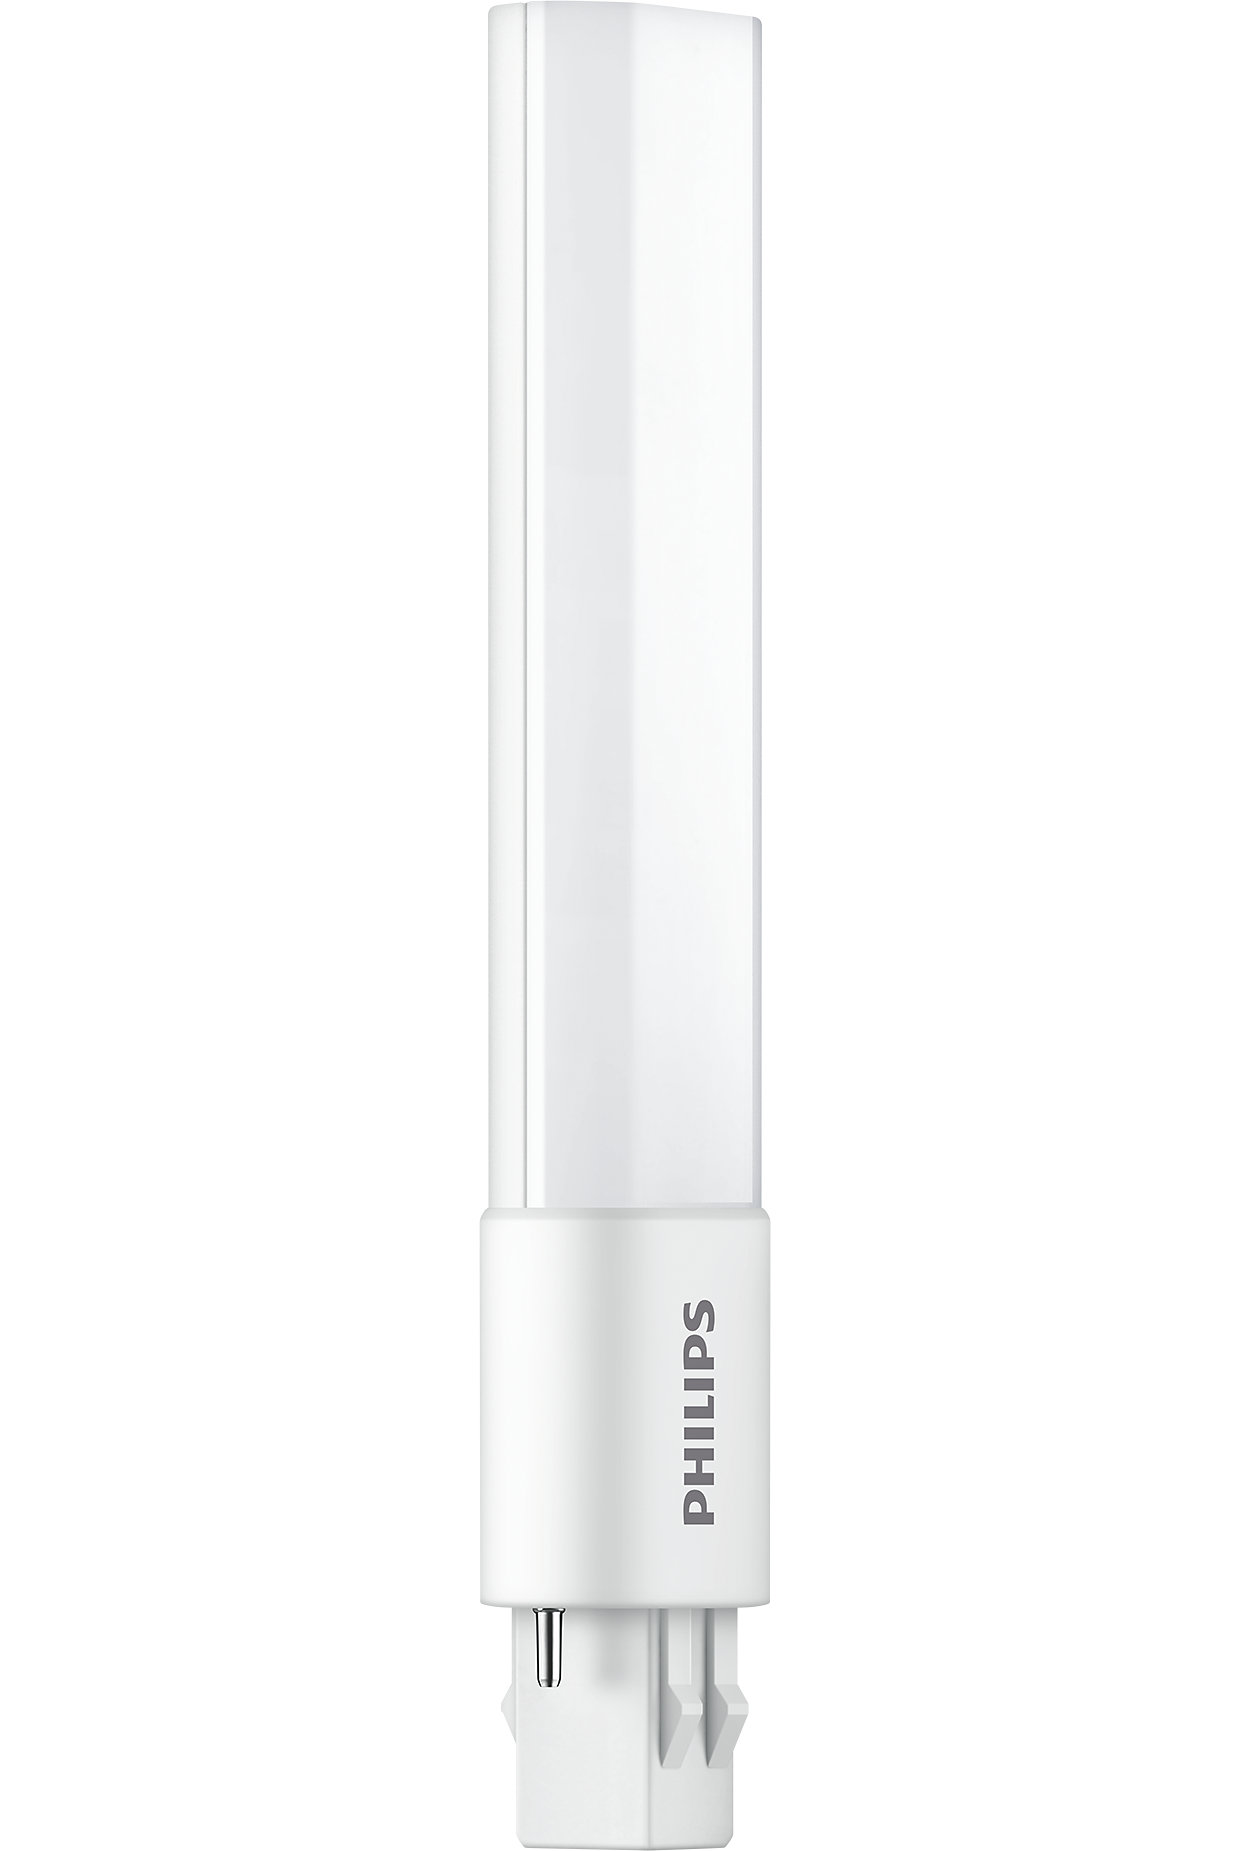 Philips most advanced LED replacements for compact fluorescent 2-pin PL-S lamps